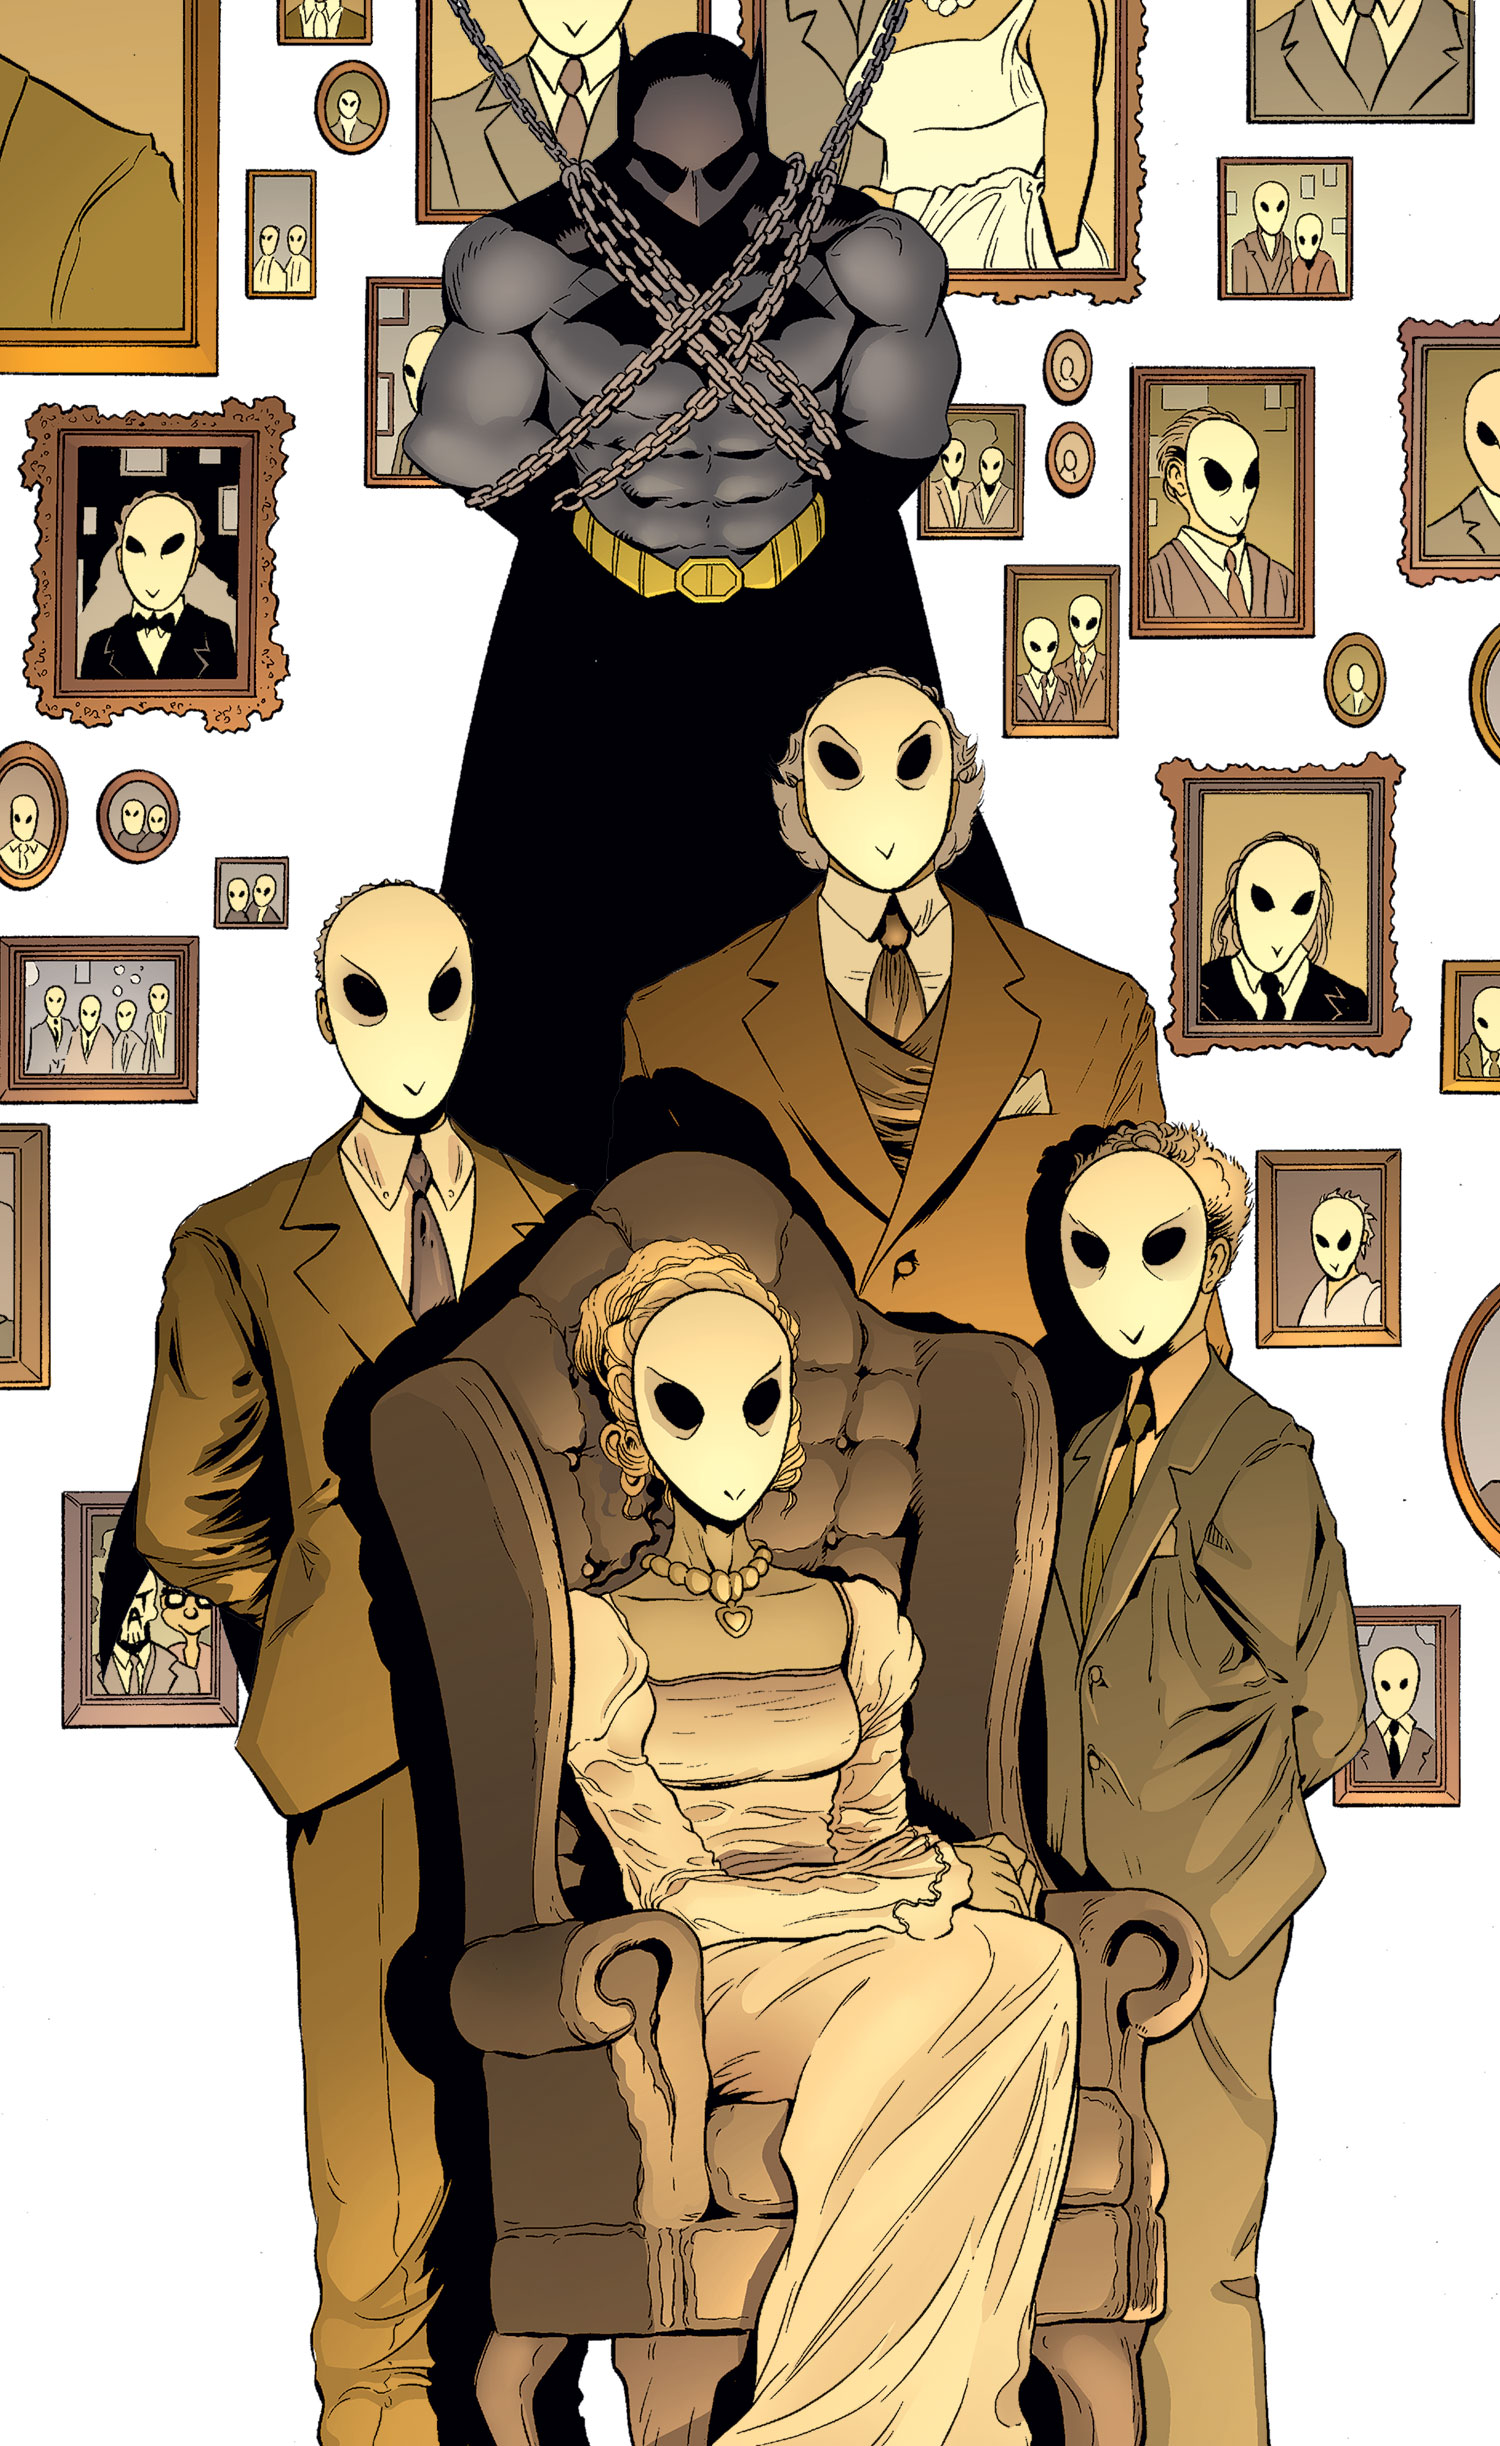 Batman And Robin 23 2 The Court Of Owls 1 Review Batman News